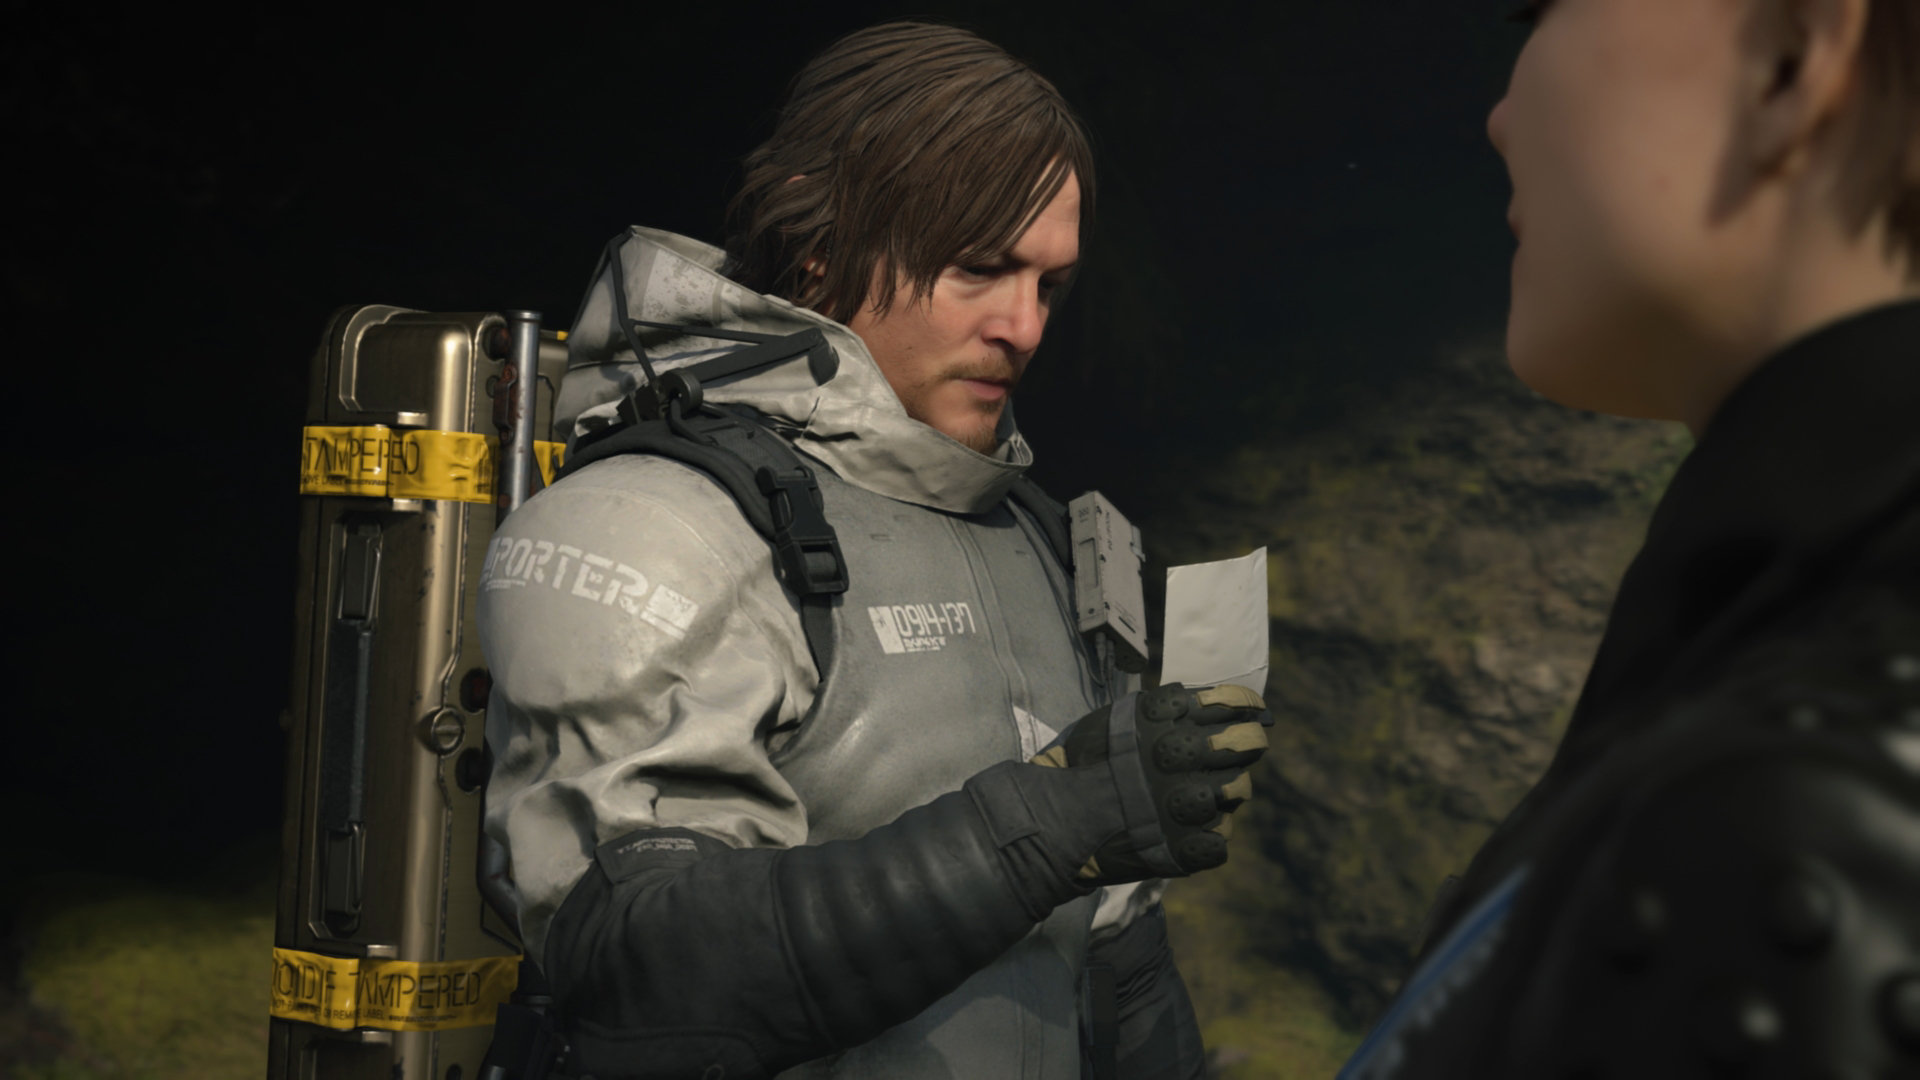 death stranding pc keybindings and controls